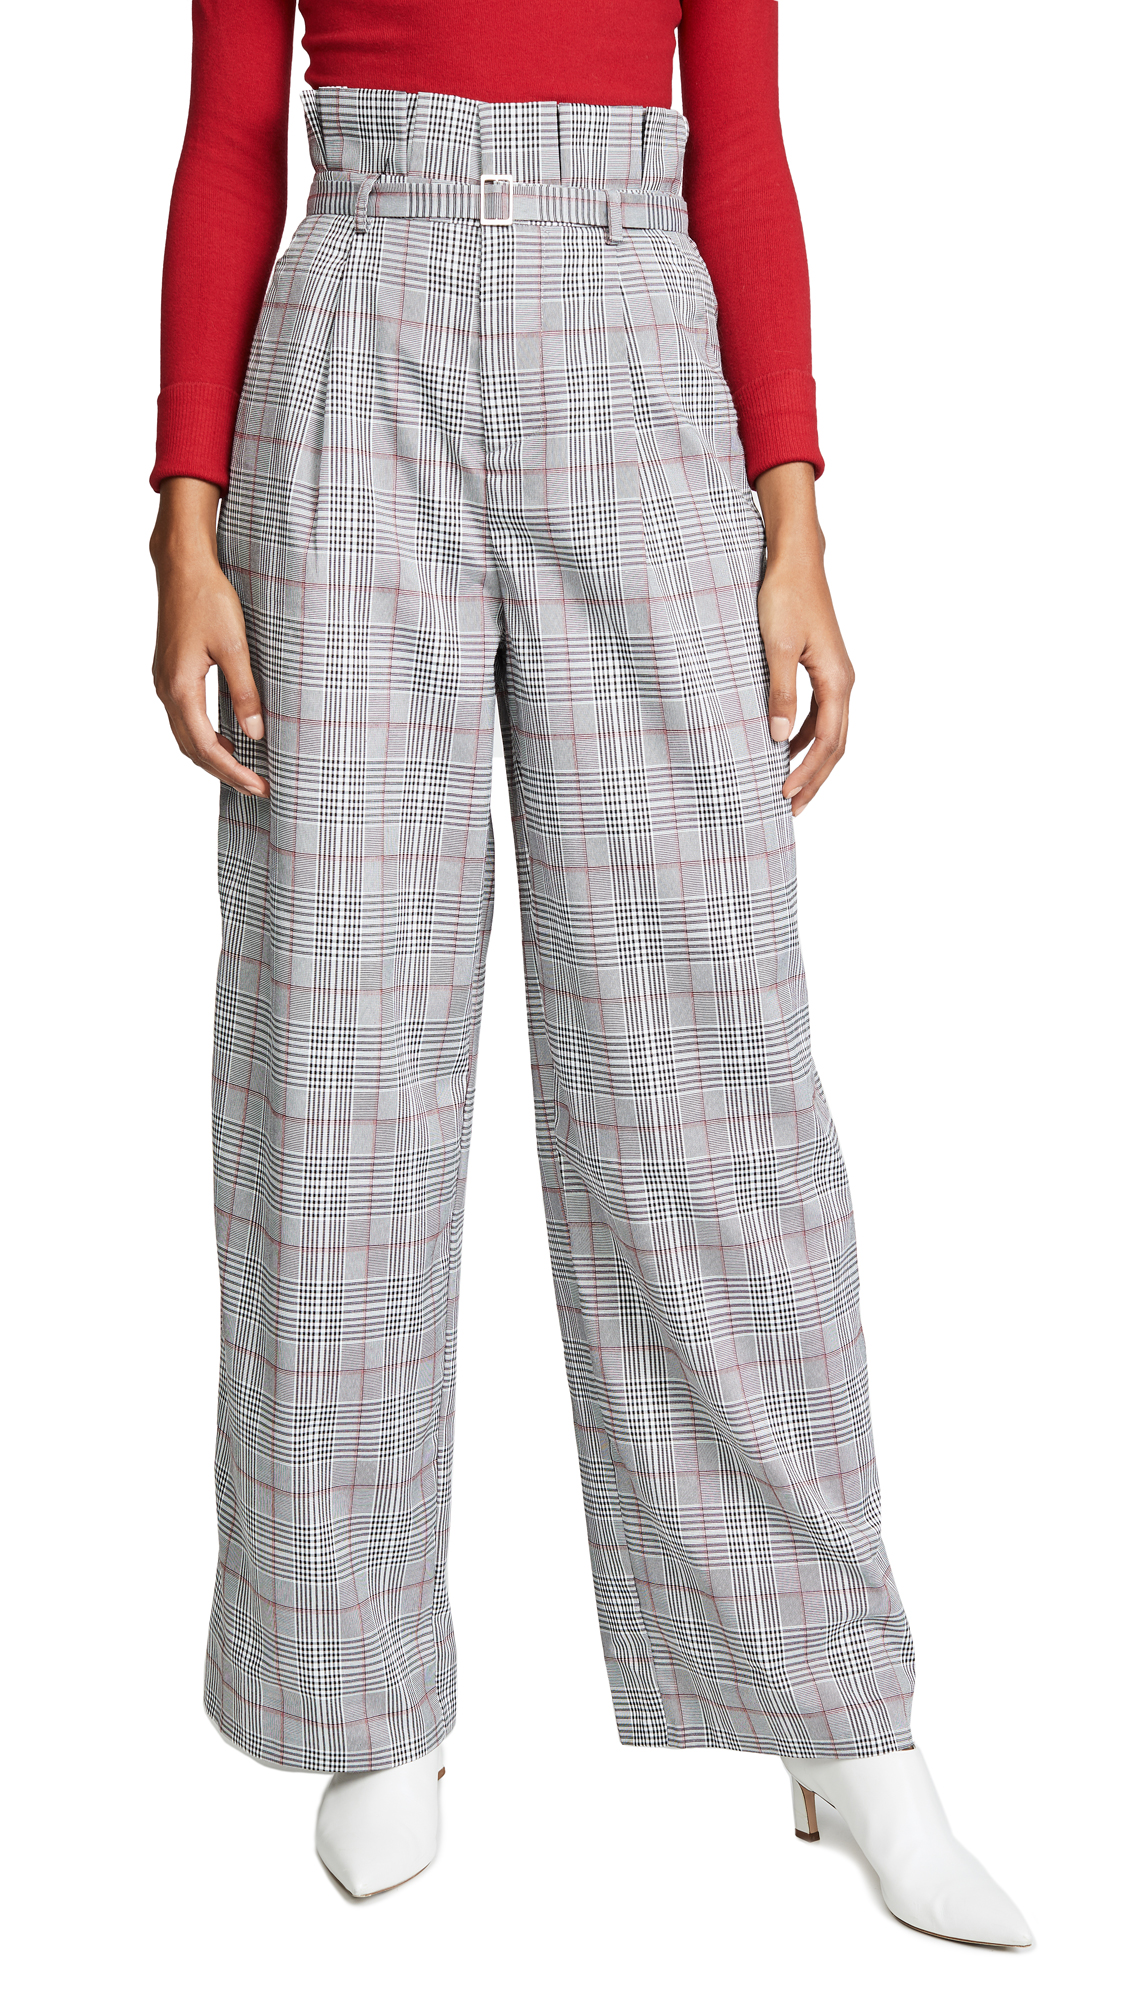 ENGLISH FACTORY High Waist Plaid Pants in Candy Pink Plaid